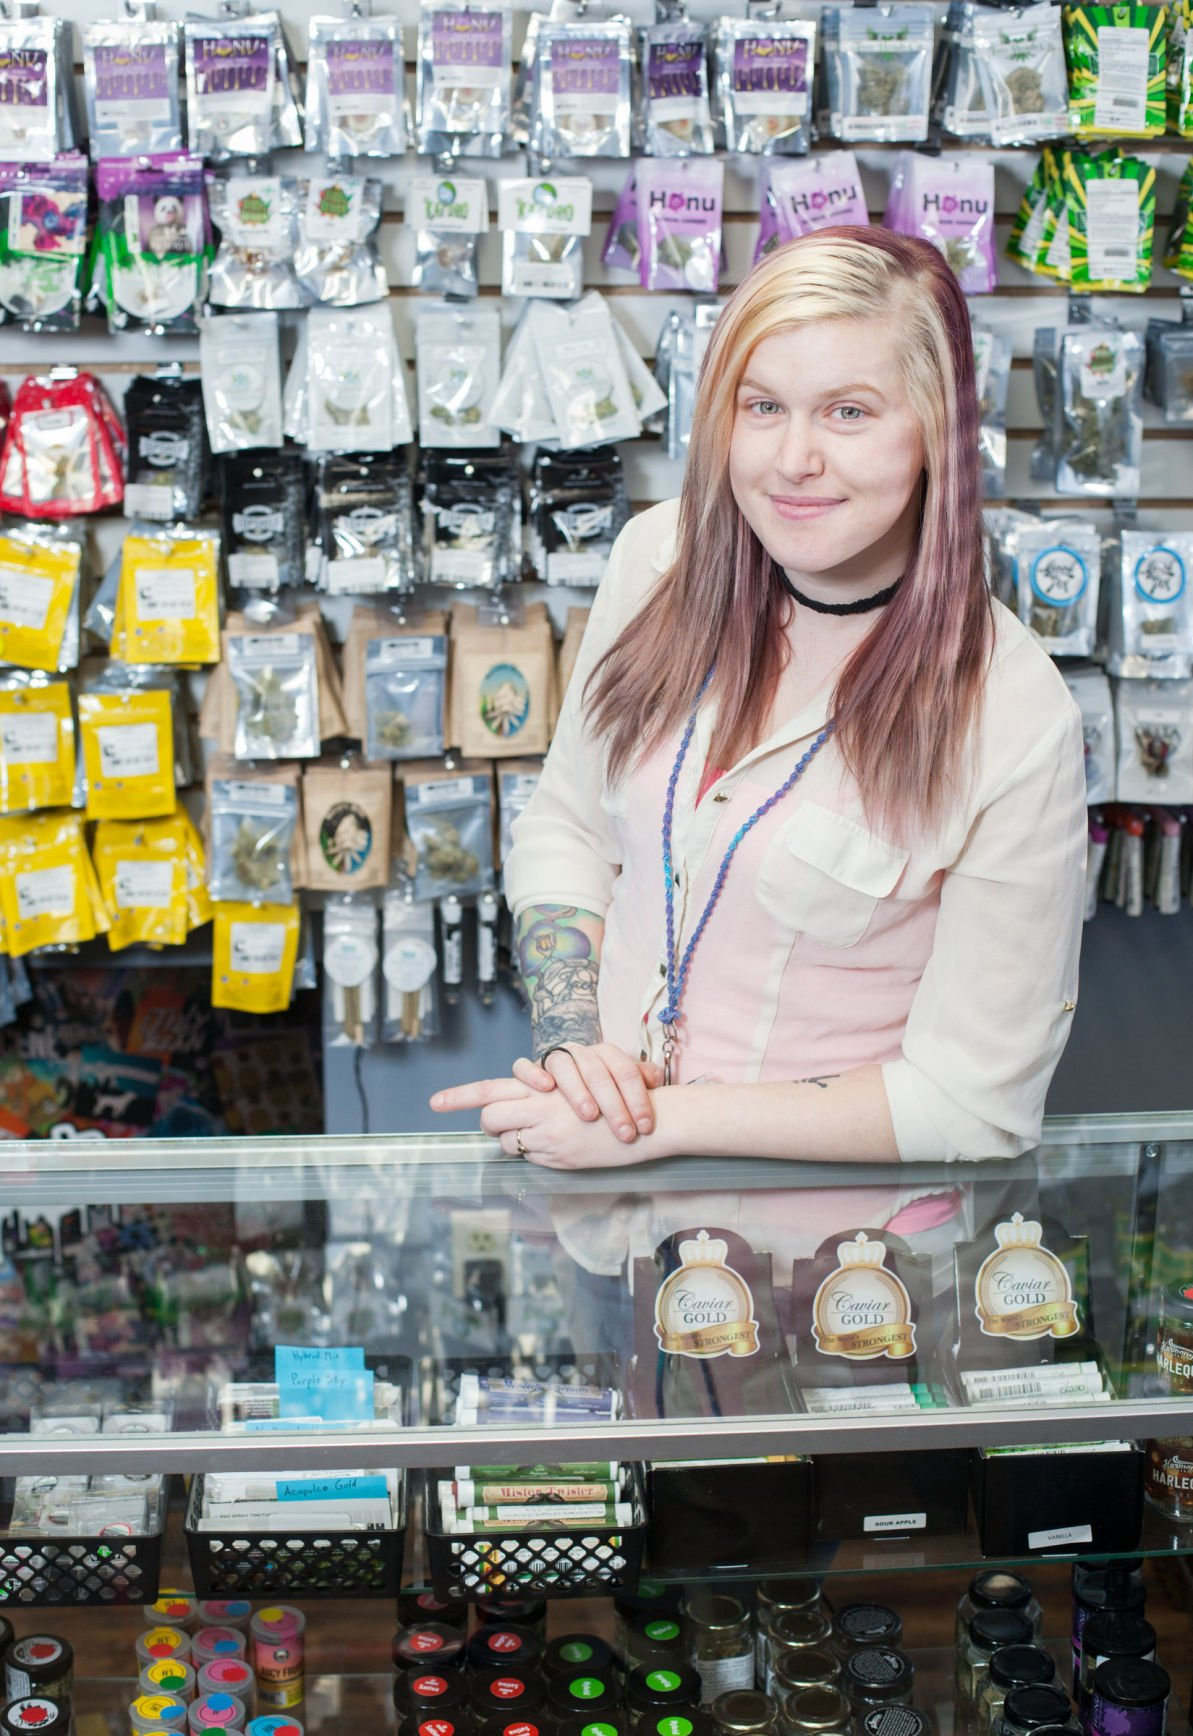 Sales soar for Port of Ilwaco pot store